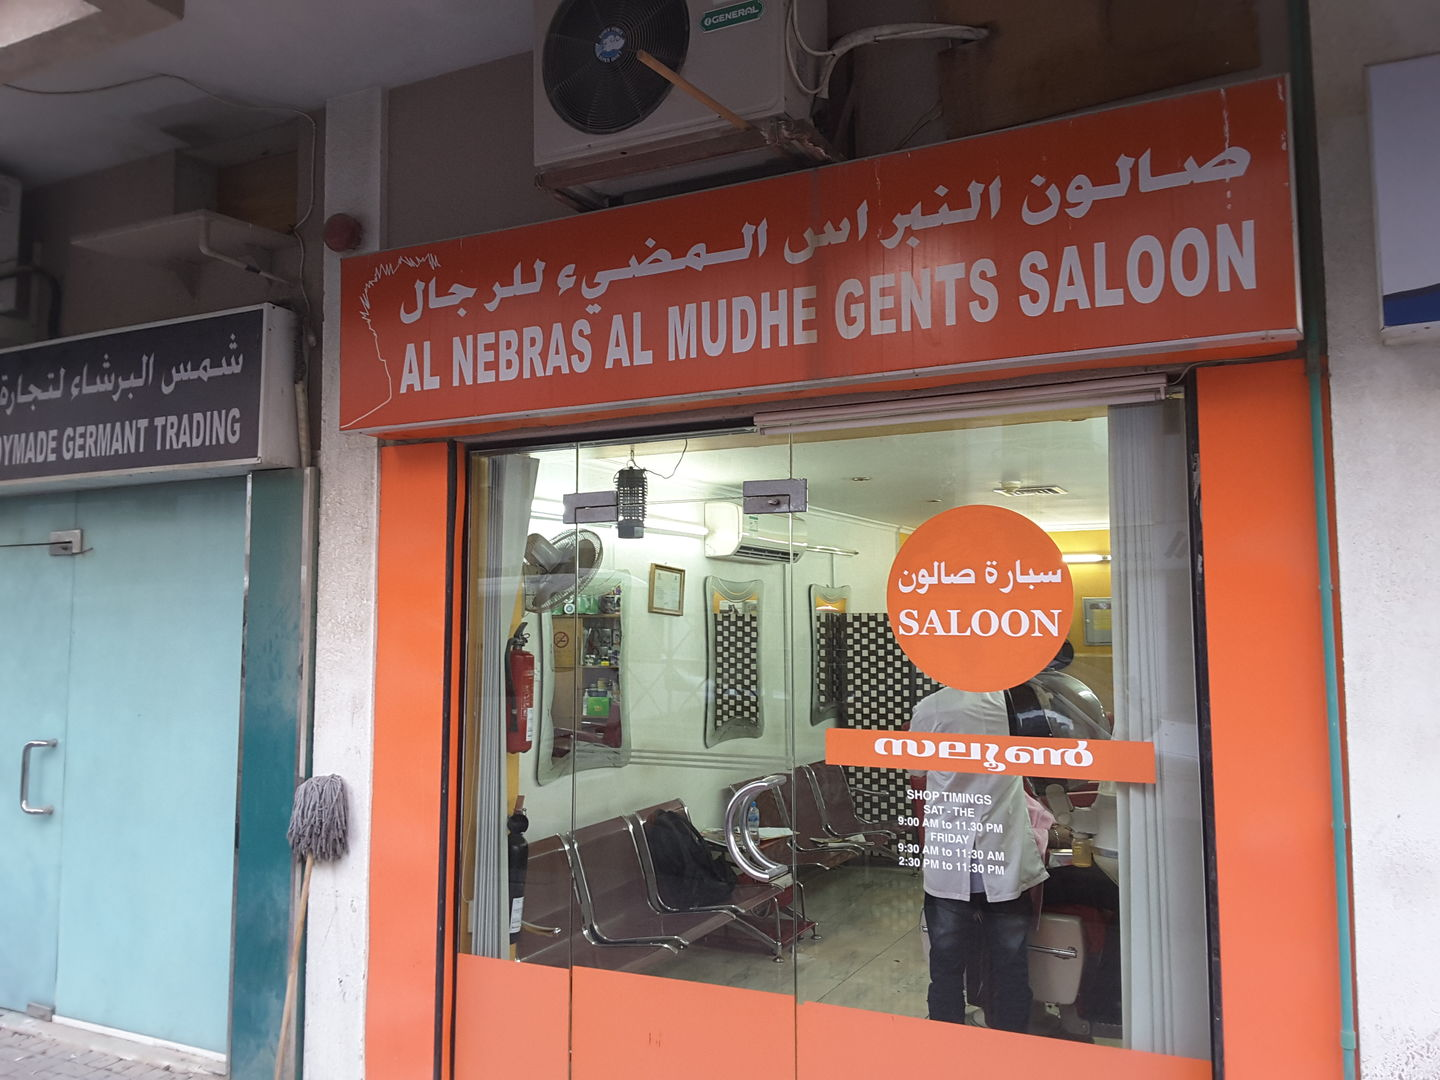 HiDubai-business-al-nebras-al-mudhe-gents-saloon-beauty-wellness-health-beauty-salons-al-karama-dubai-2